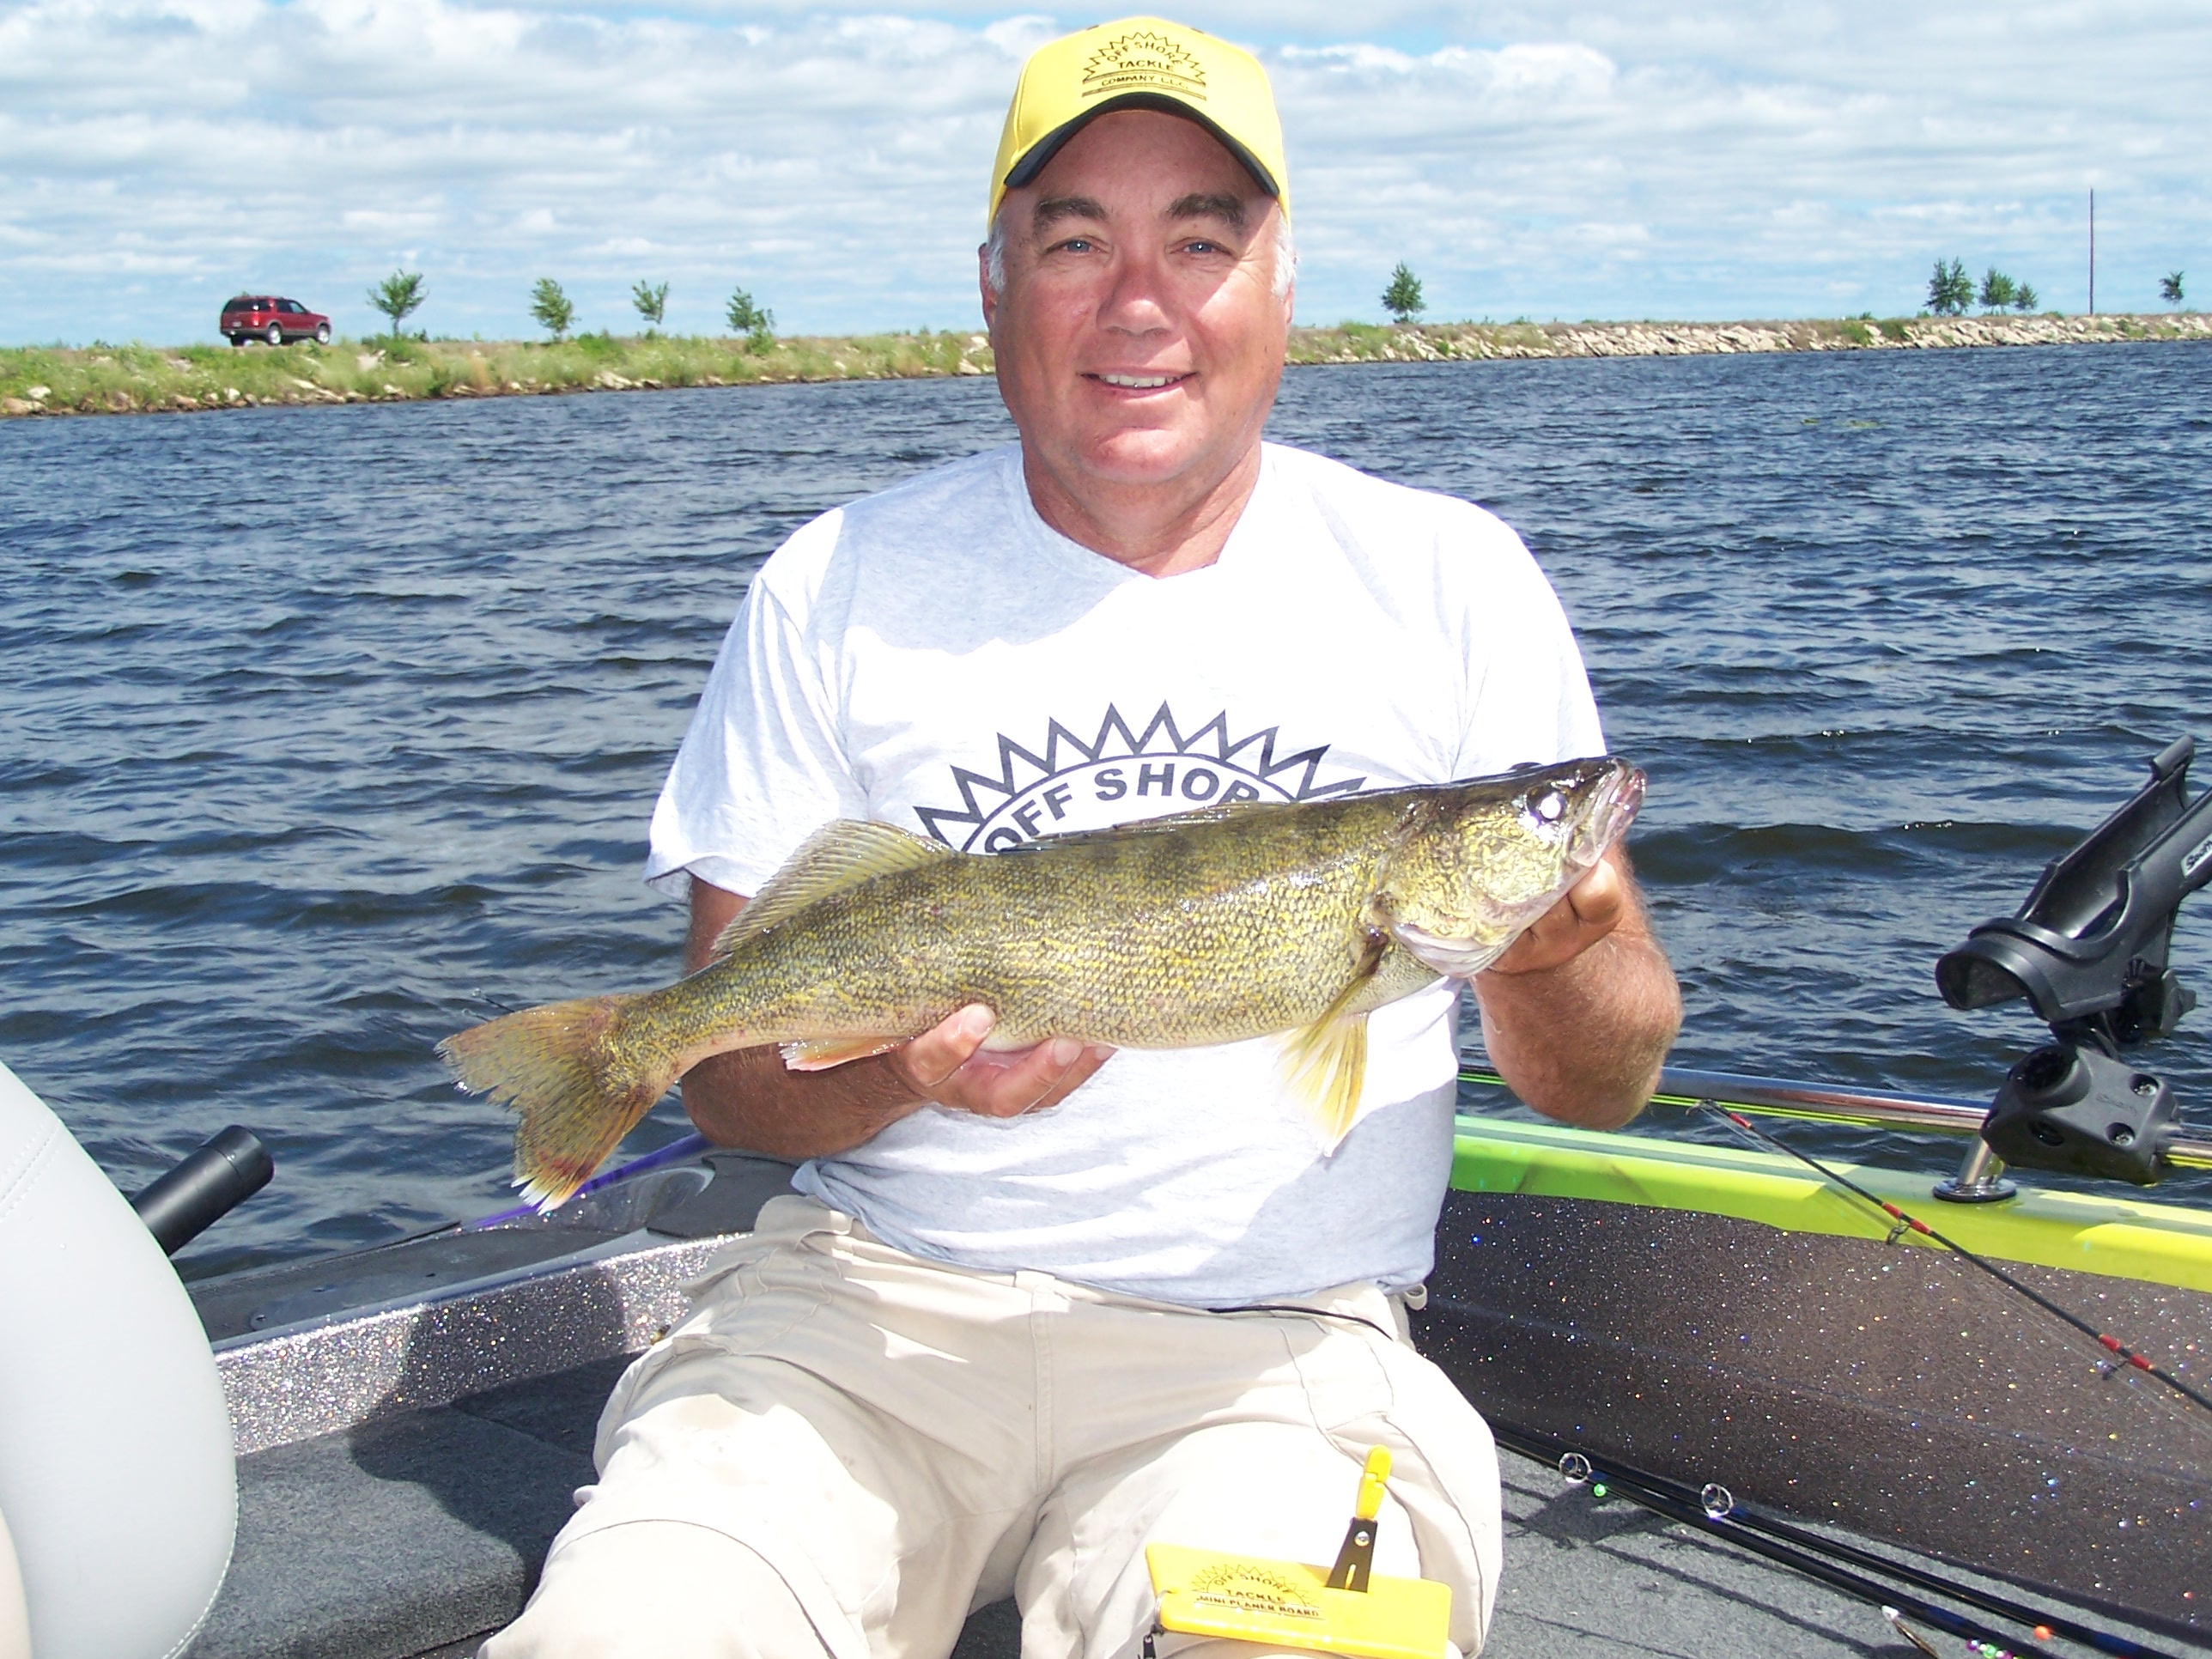 Open water fishing 2016 home fishing the midwest for Fishing videos 2016